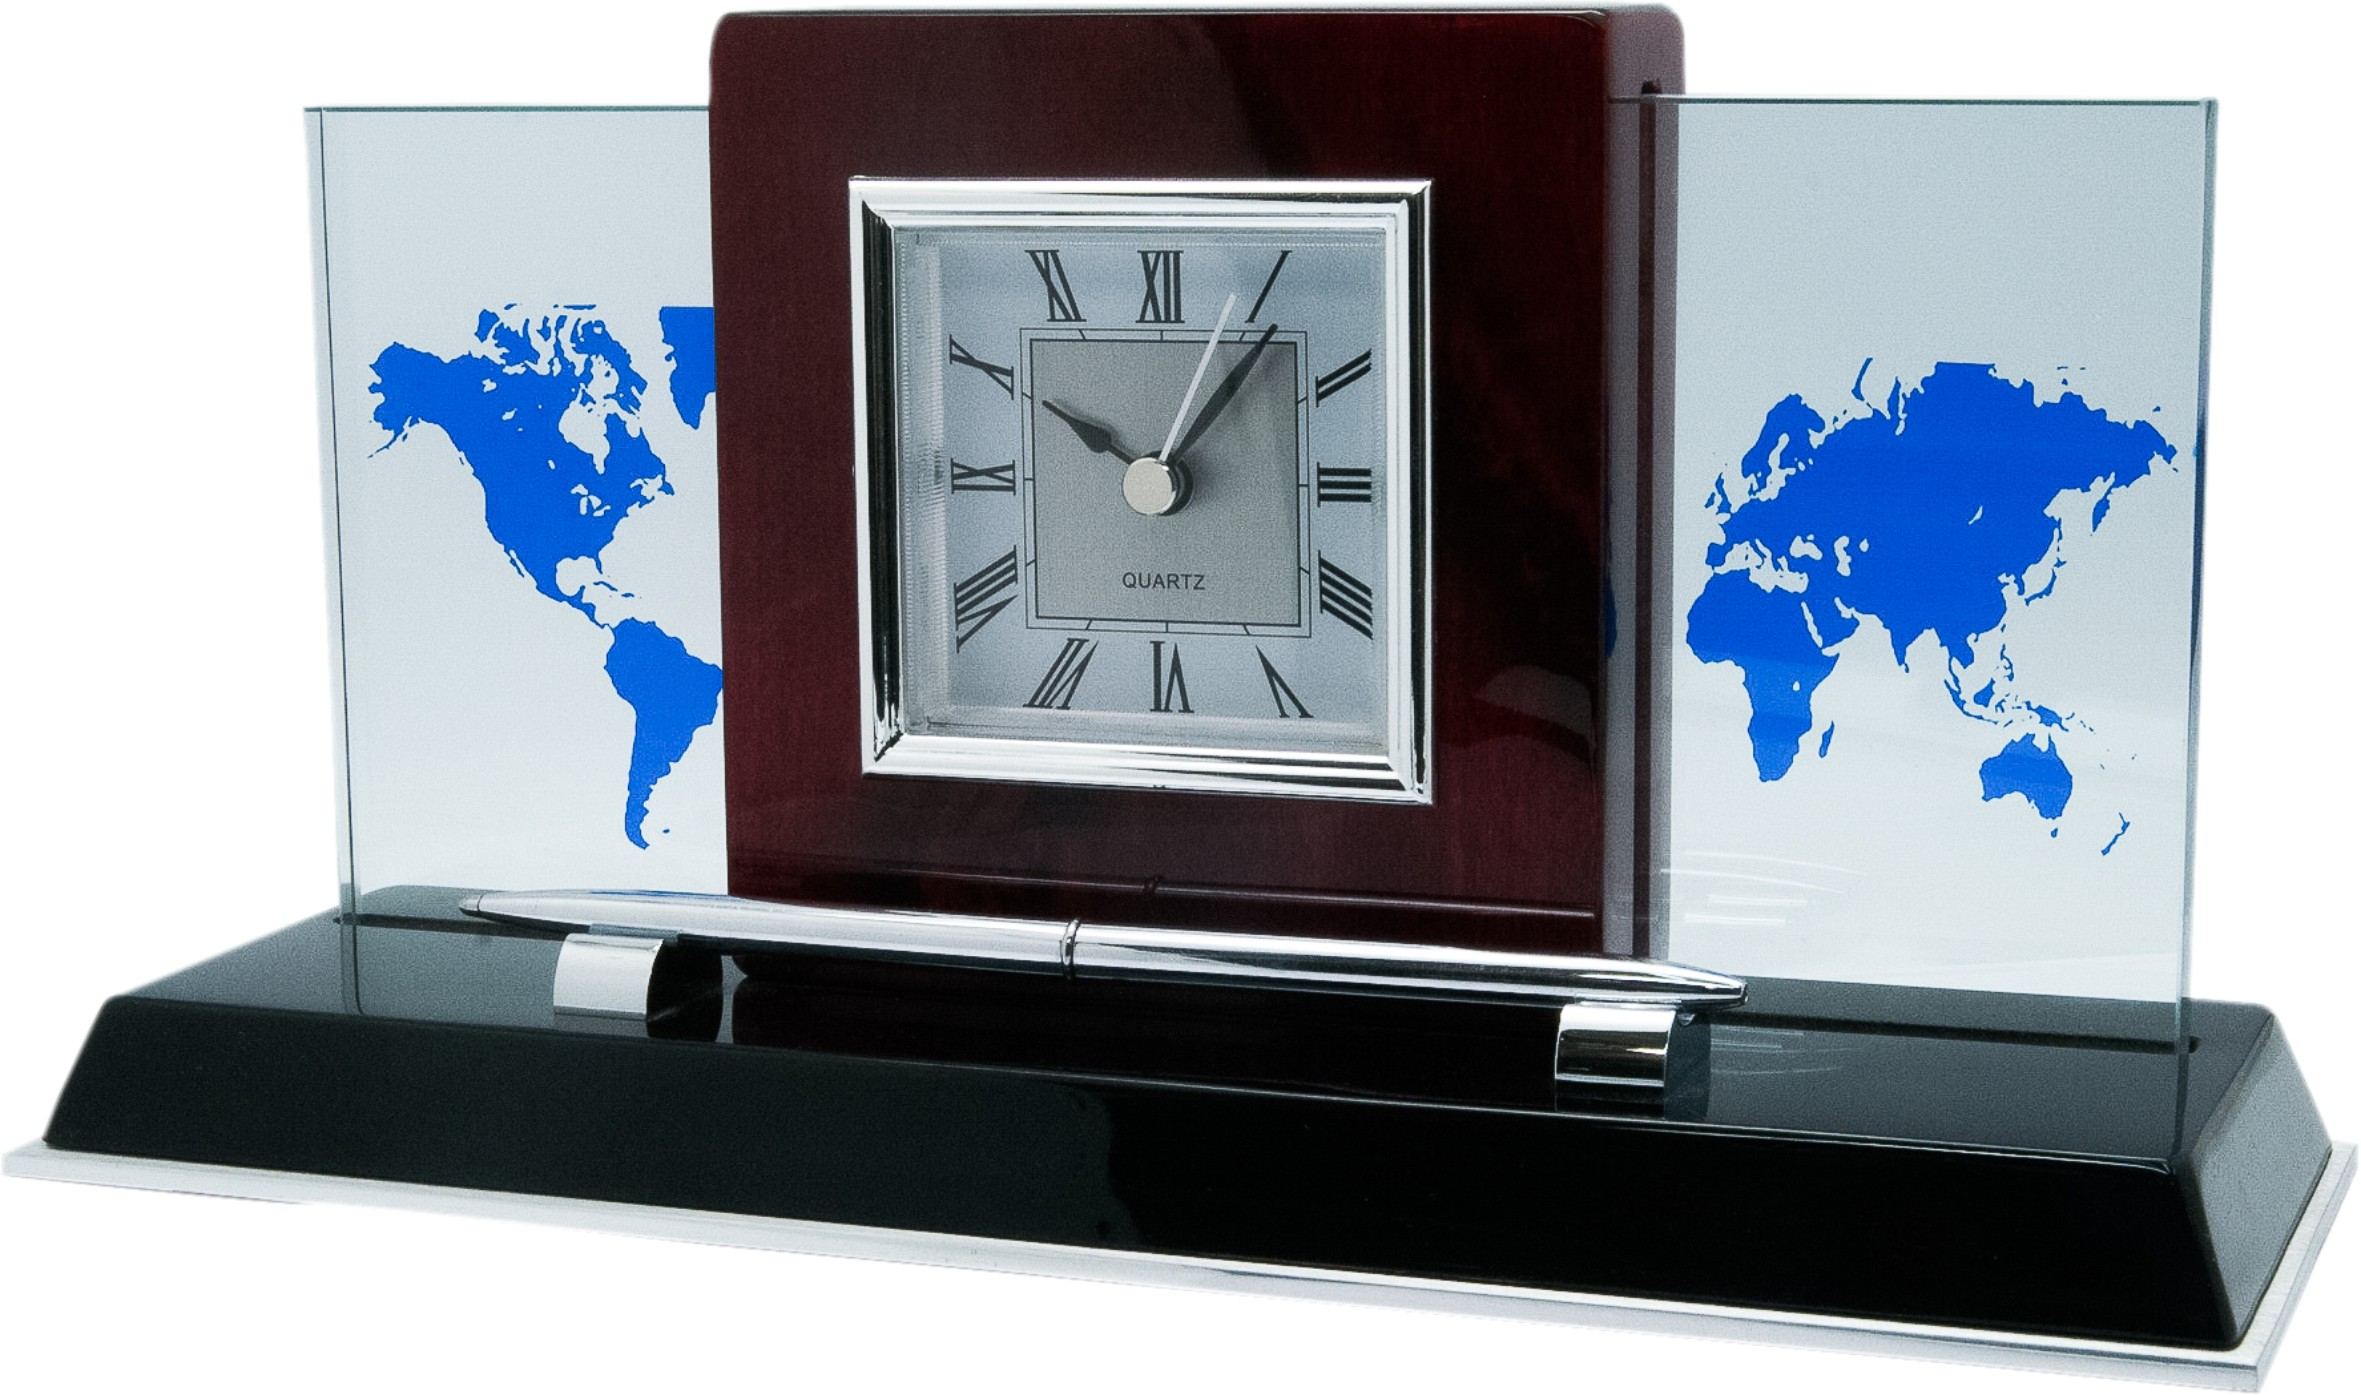 Desktop clock and pen with world map on glass belfast trading llc desktop clock and pen with world map on glass gumiabroncs Choice Image